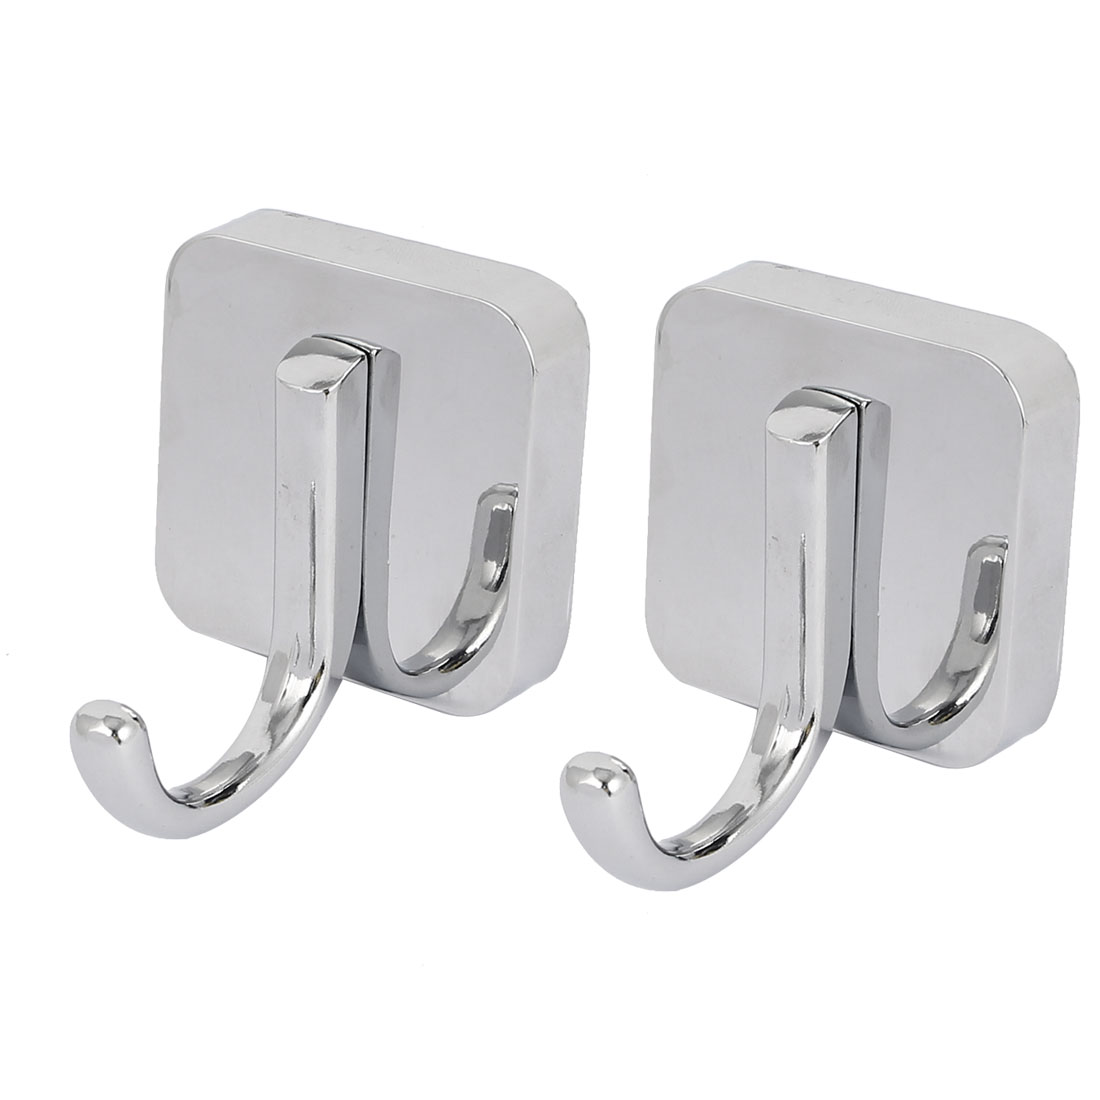 Bathroom Clothes Hanging Wall Mounted Zinc Alloy Chrome Plated Single Hanger Hook Silver Tone 2pcs